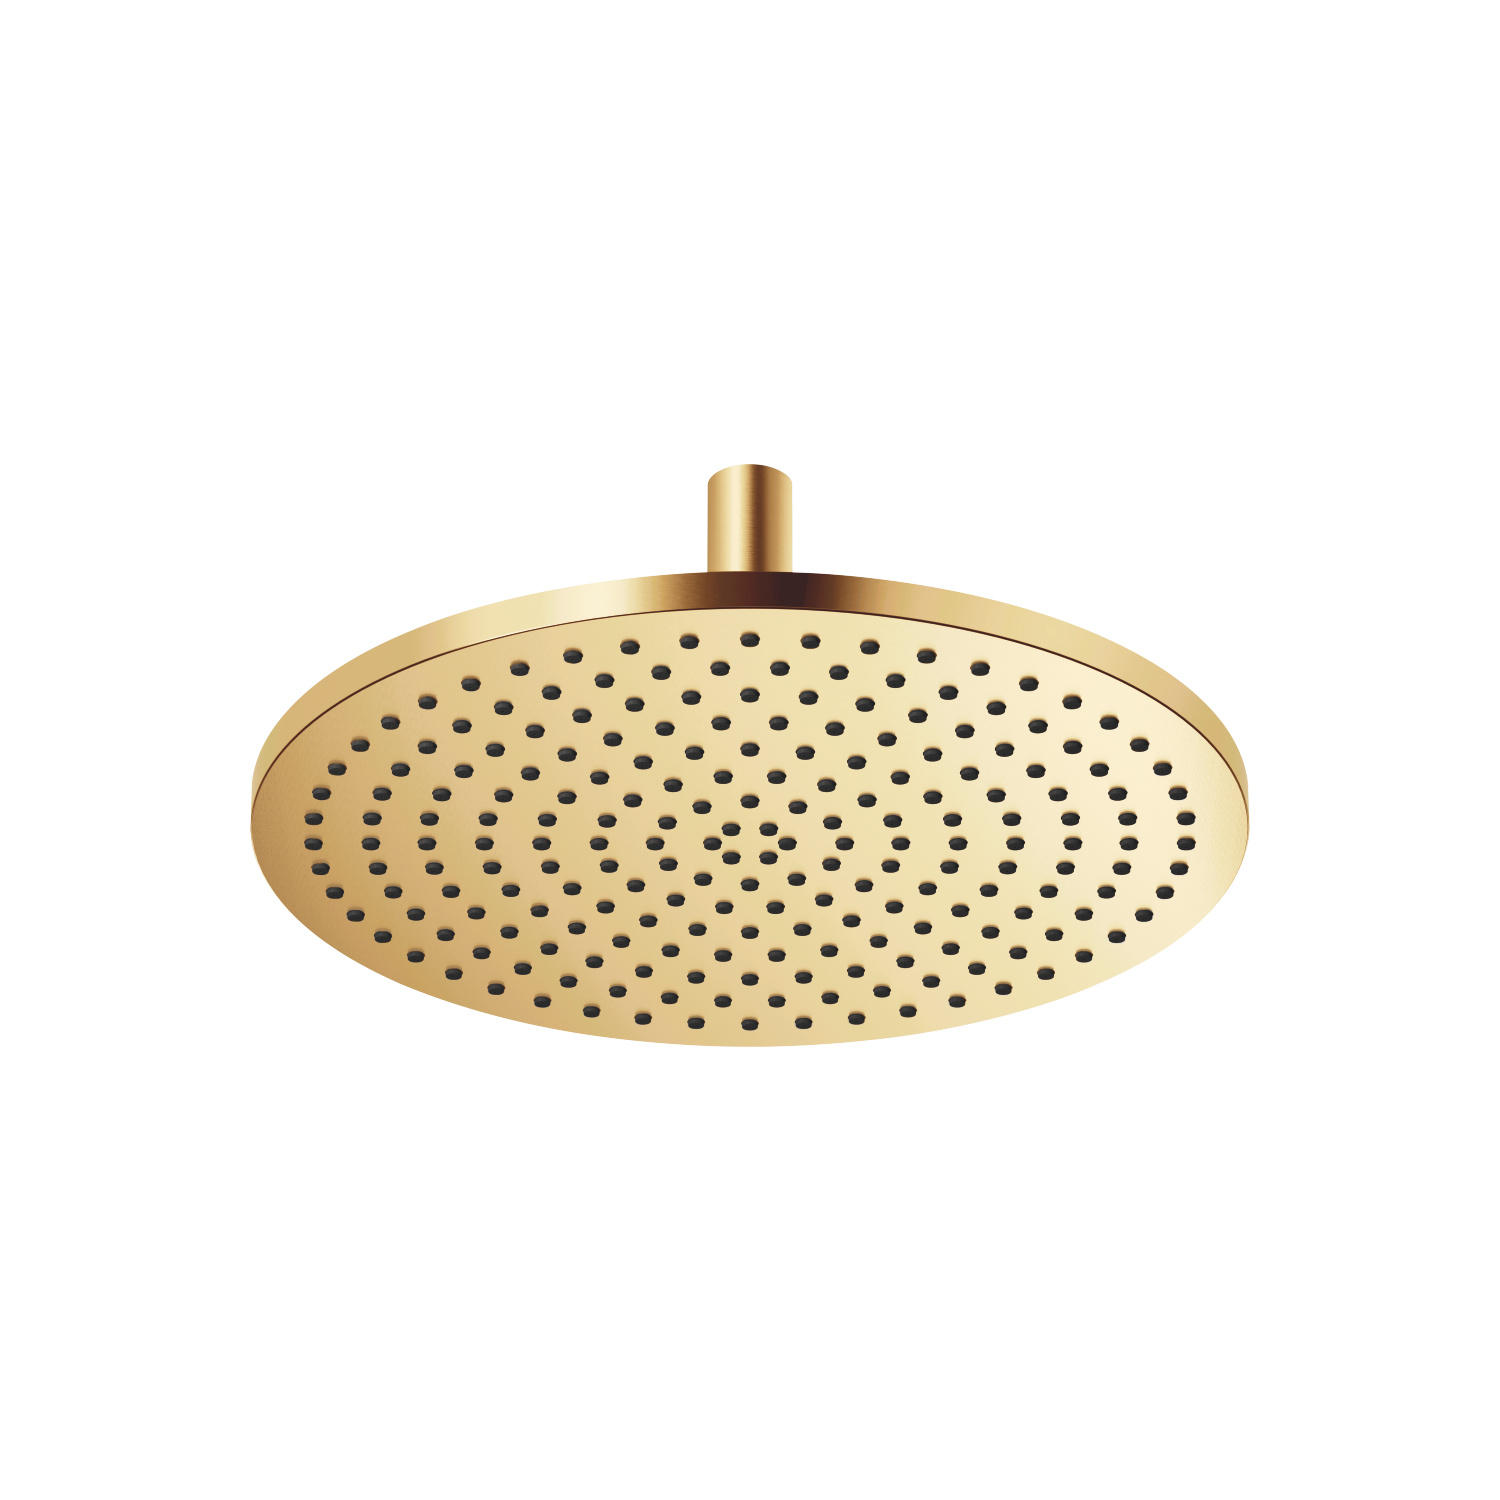 Rain shower with ceiling fixing - brushed Durabrass